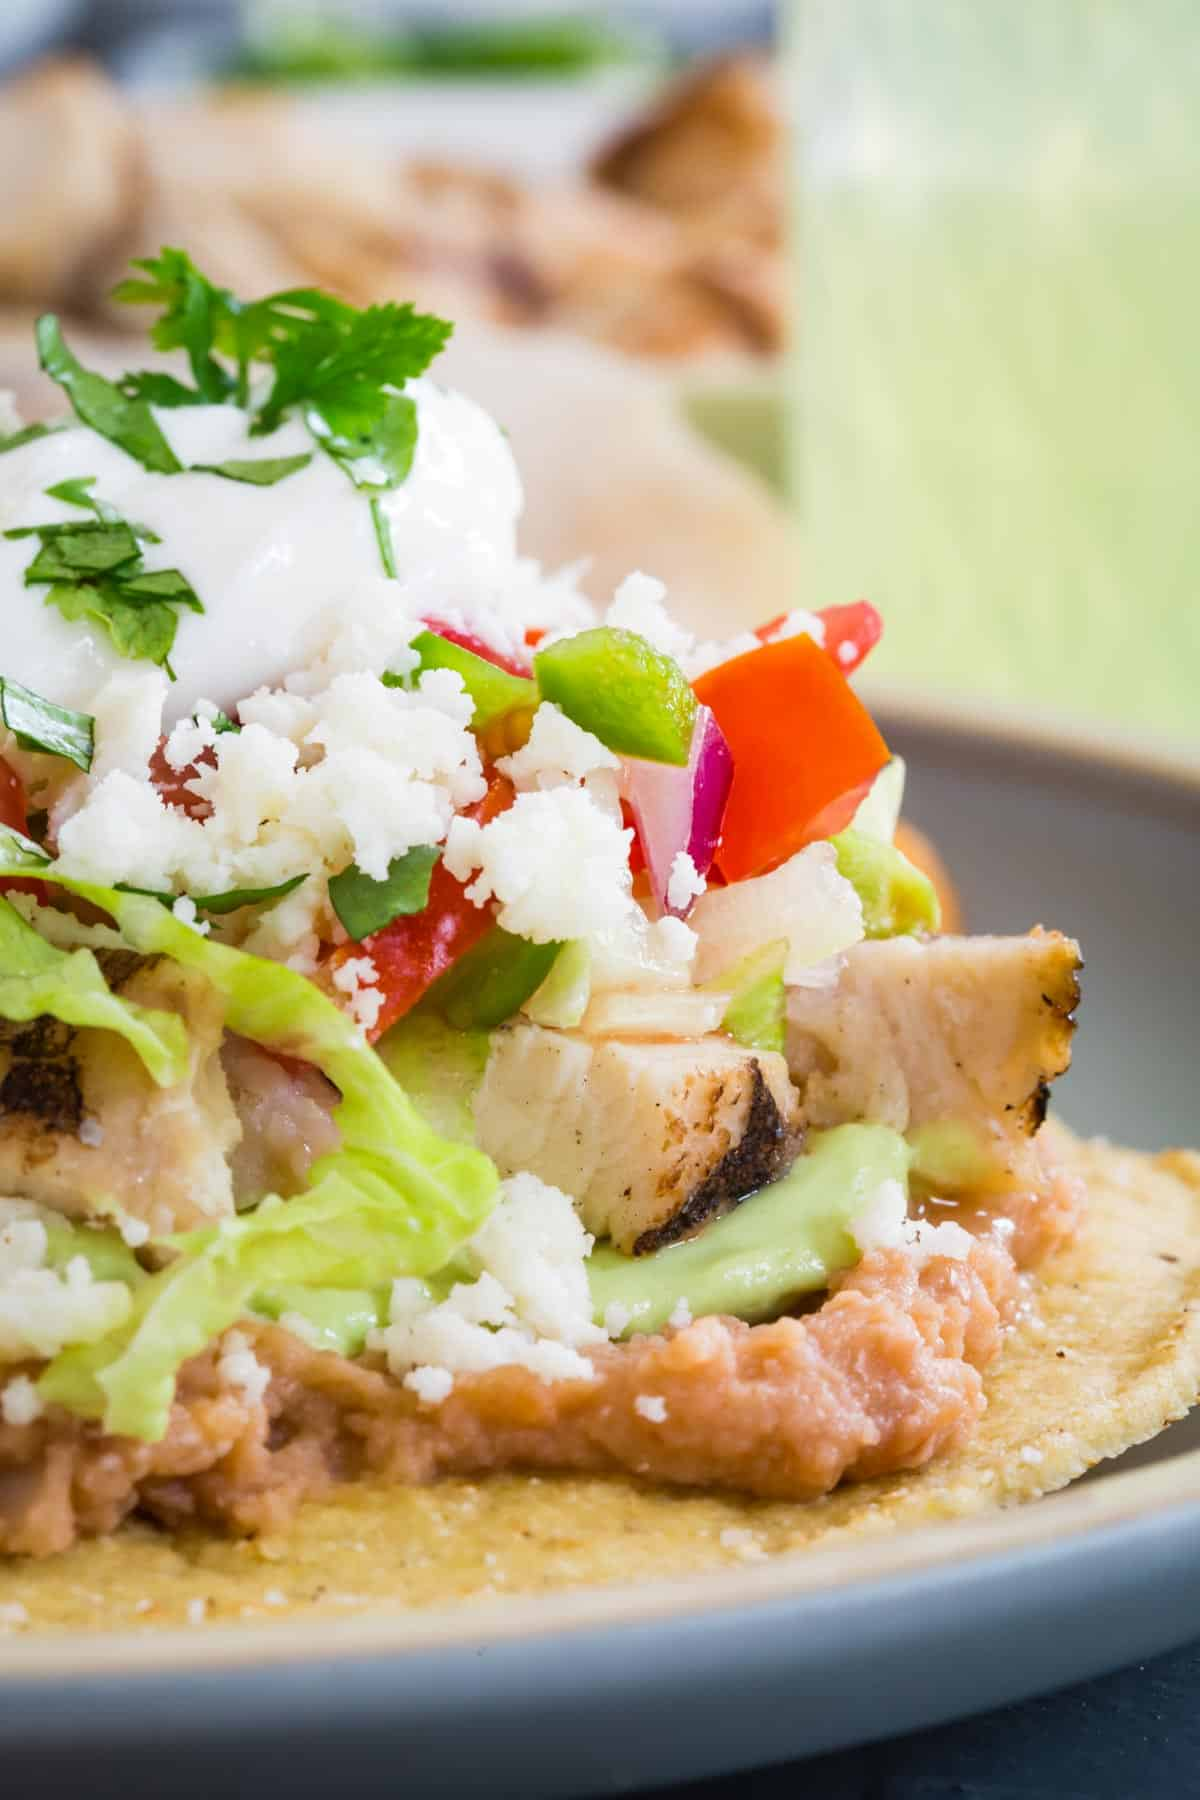 a crispy corn tortilla topped with layers of refried bans, guacamole, cooked chicken pieces, lettuce, salsa, crumbled cotija cheese, sour cream and a garnish of cilantro